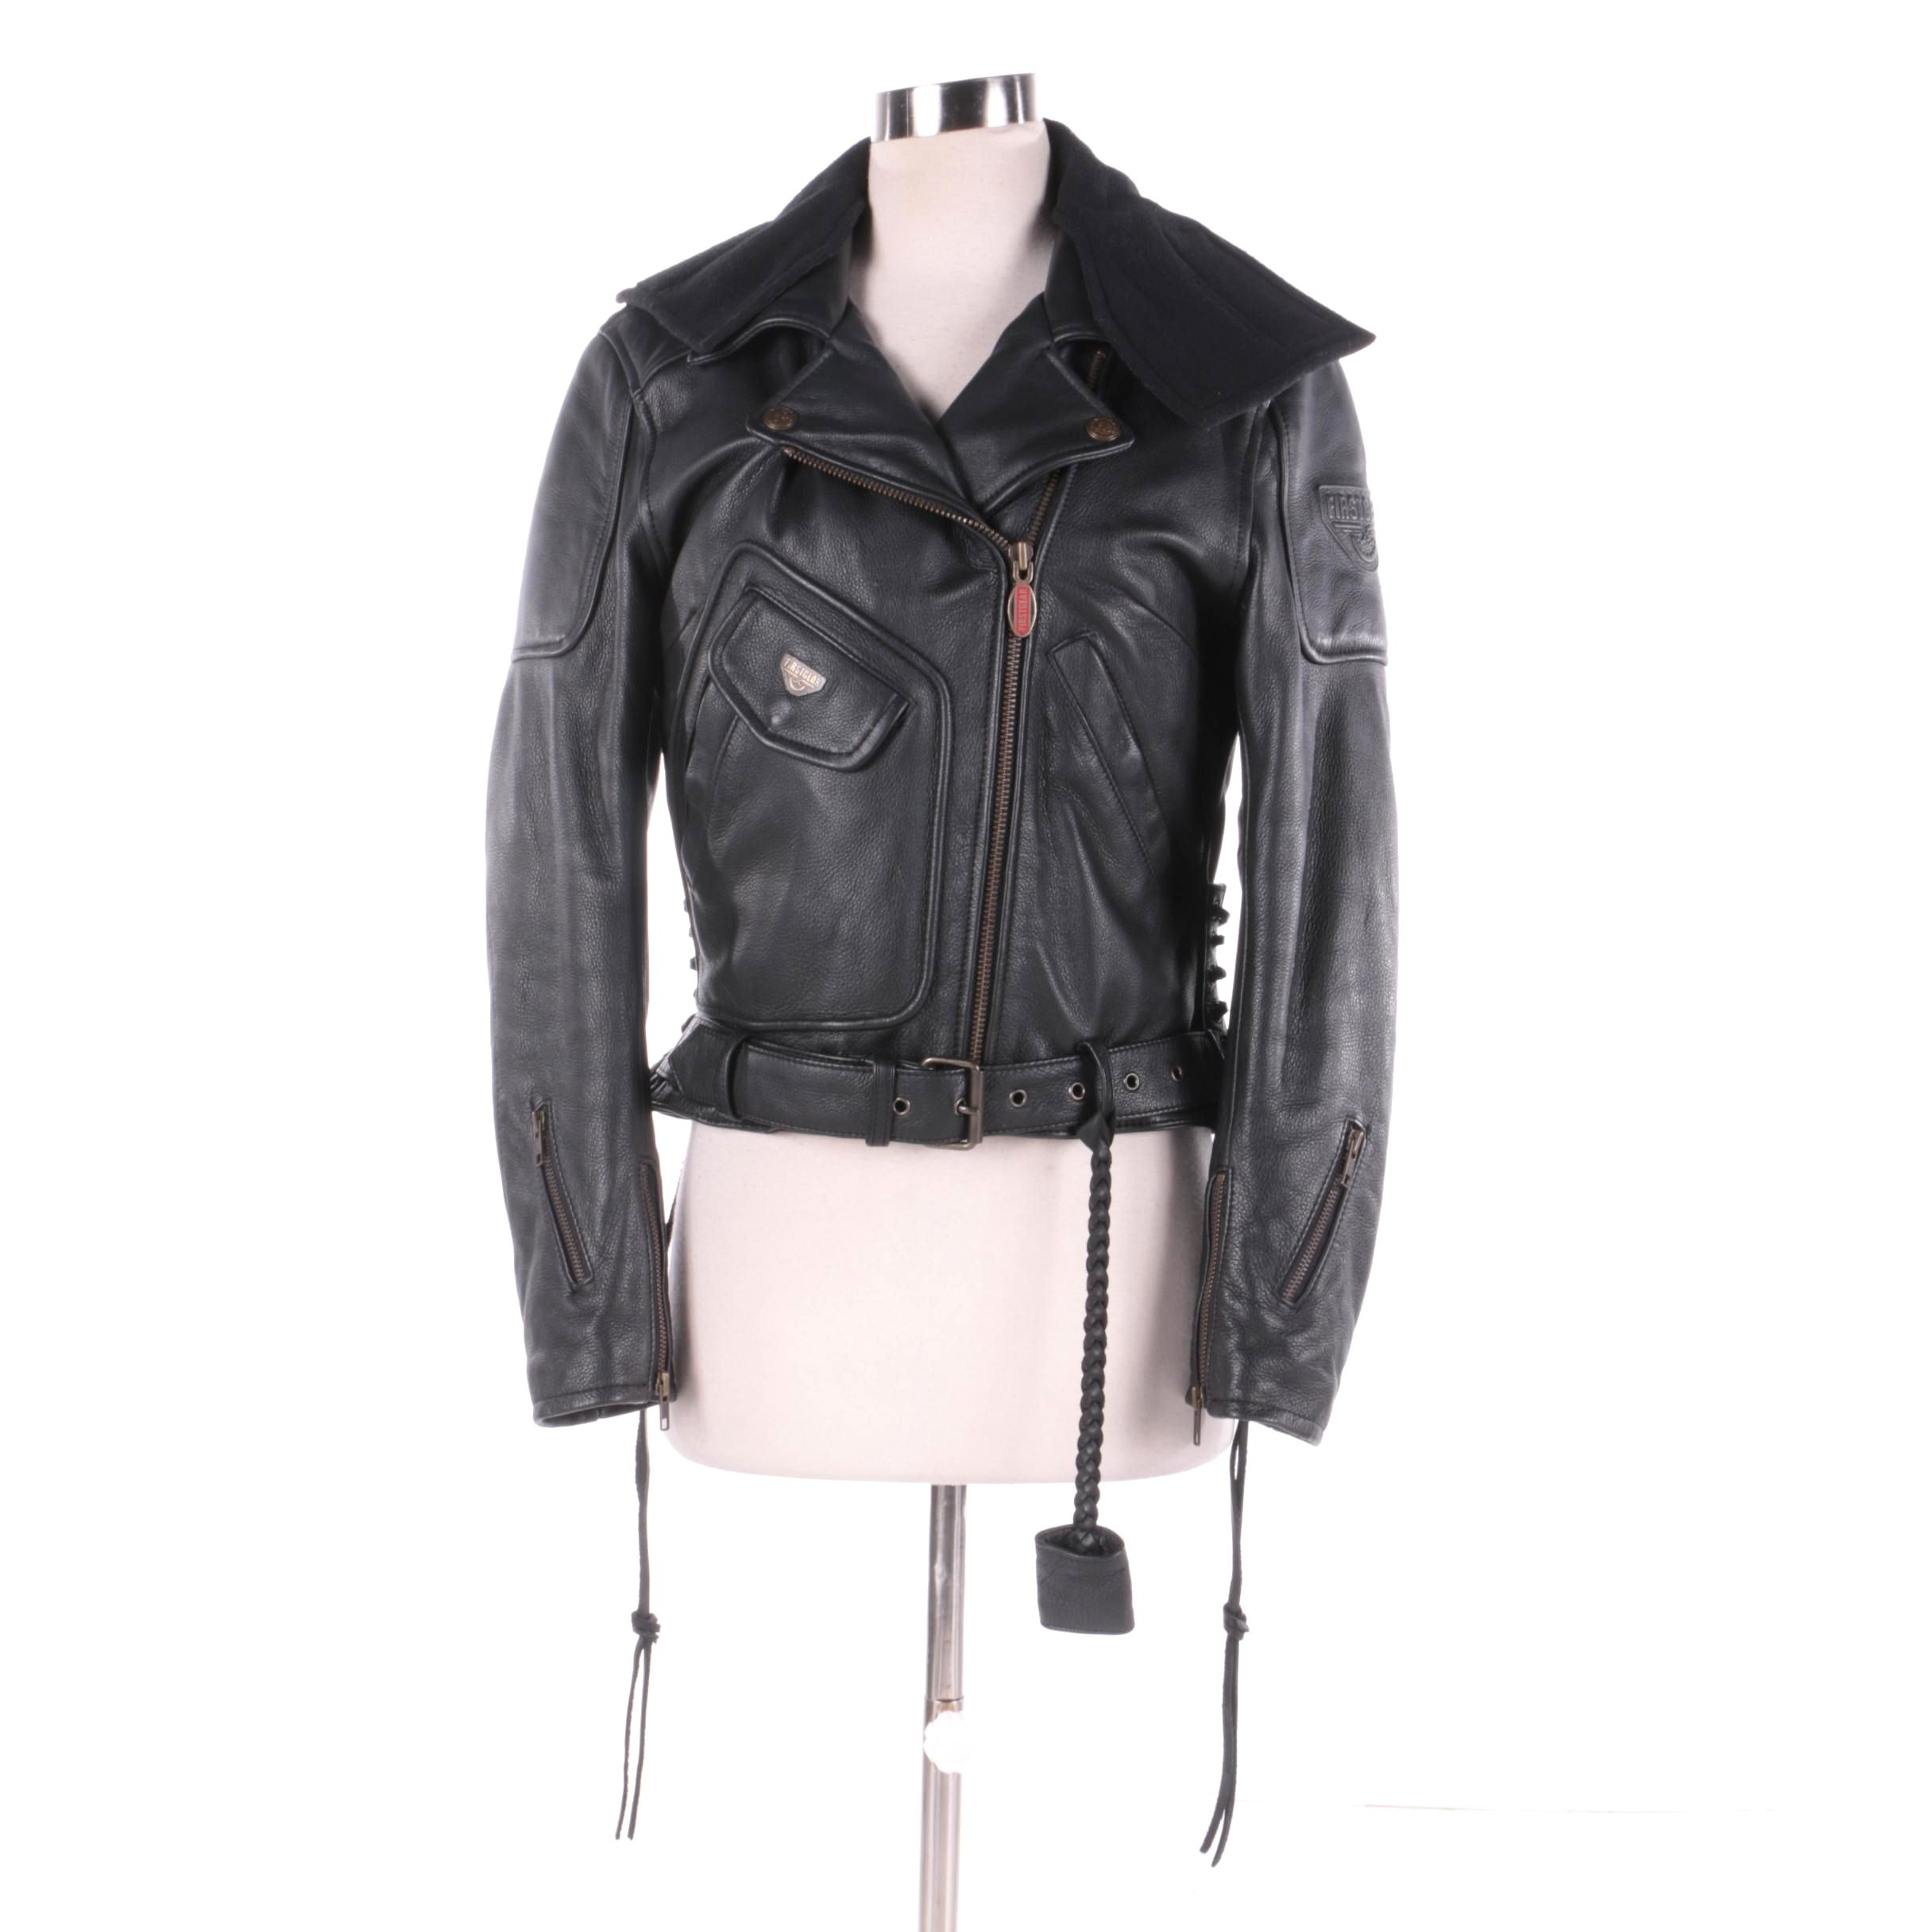 Women's Firstgear Black Leather Motorcycle Jacket